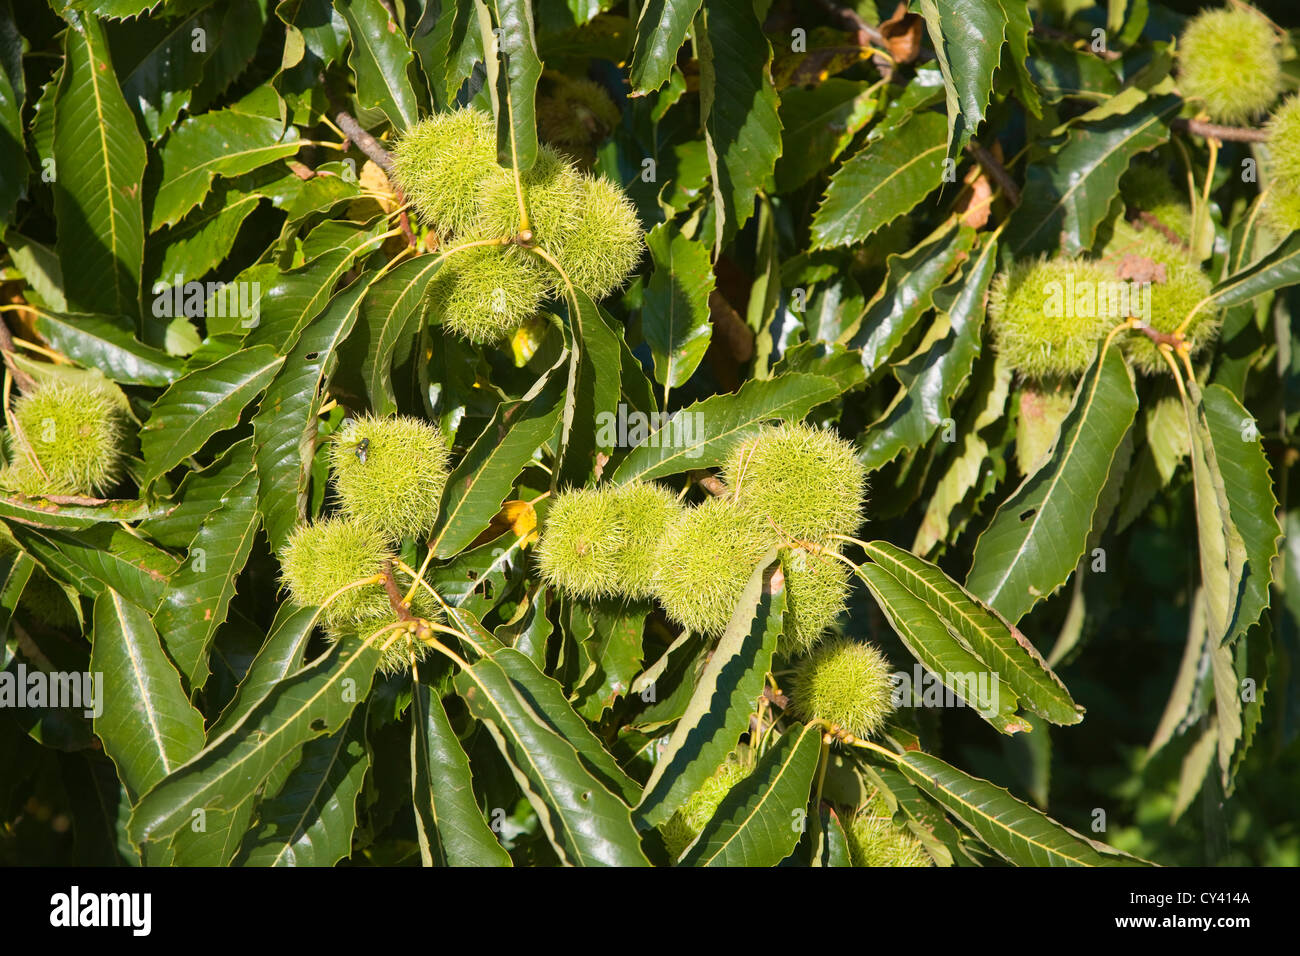 Castanea sativa sweet chestnut tree fruit and leaves - Stock Image